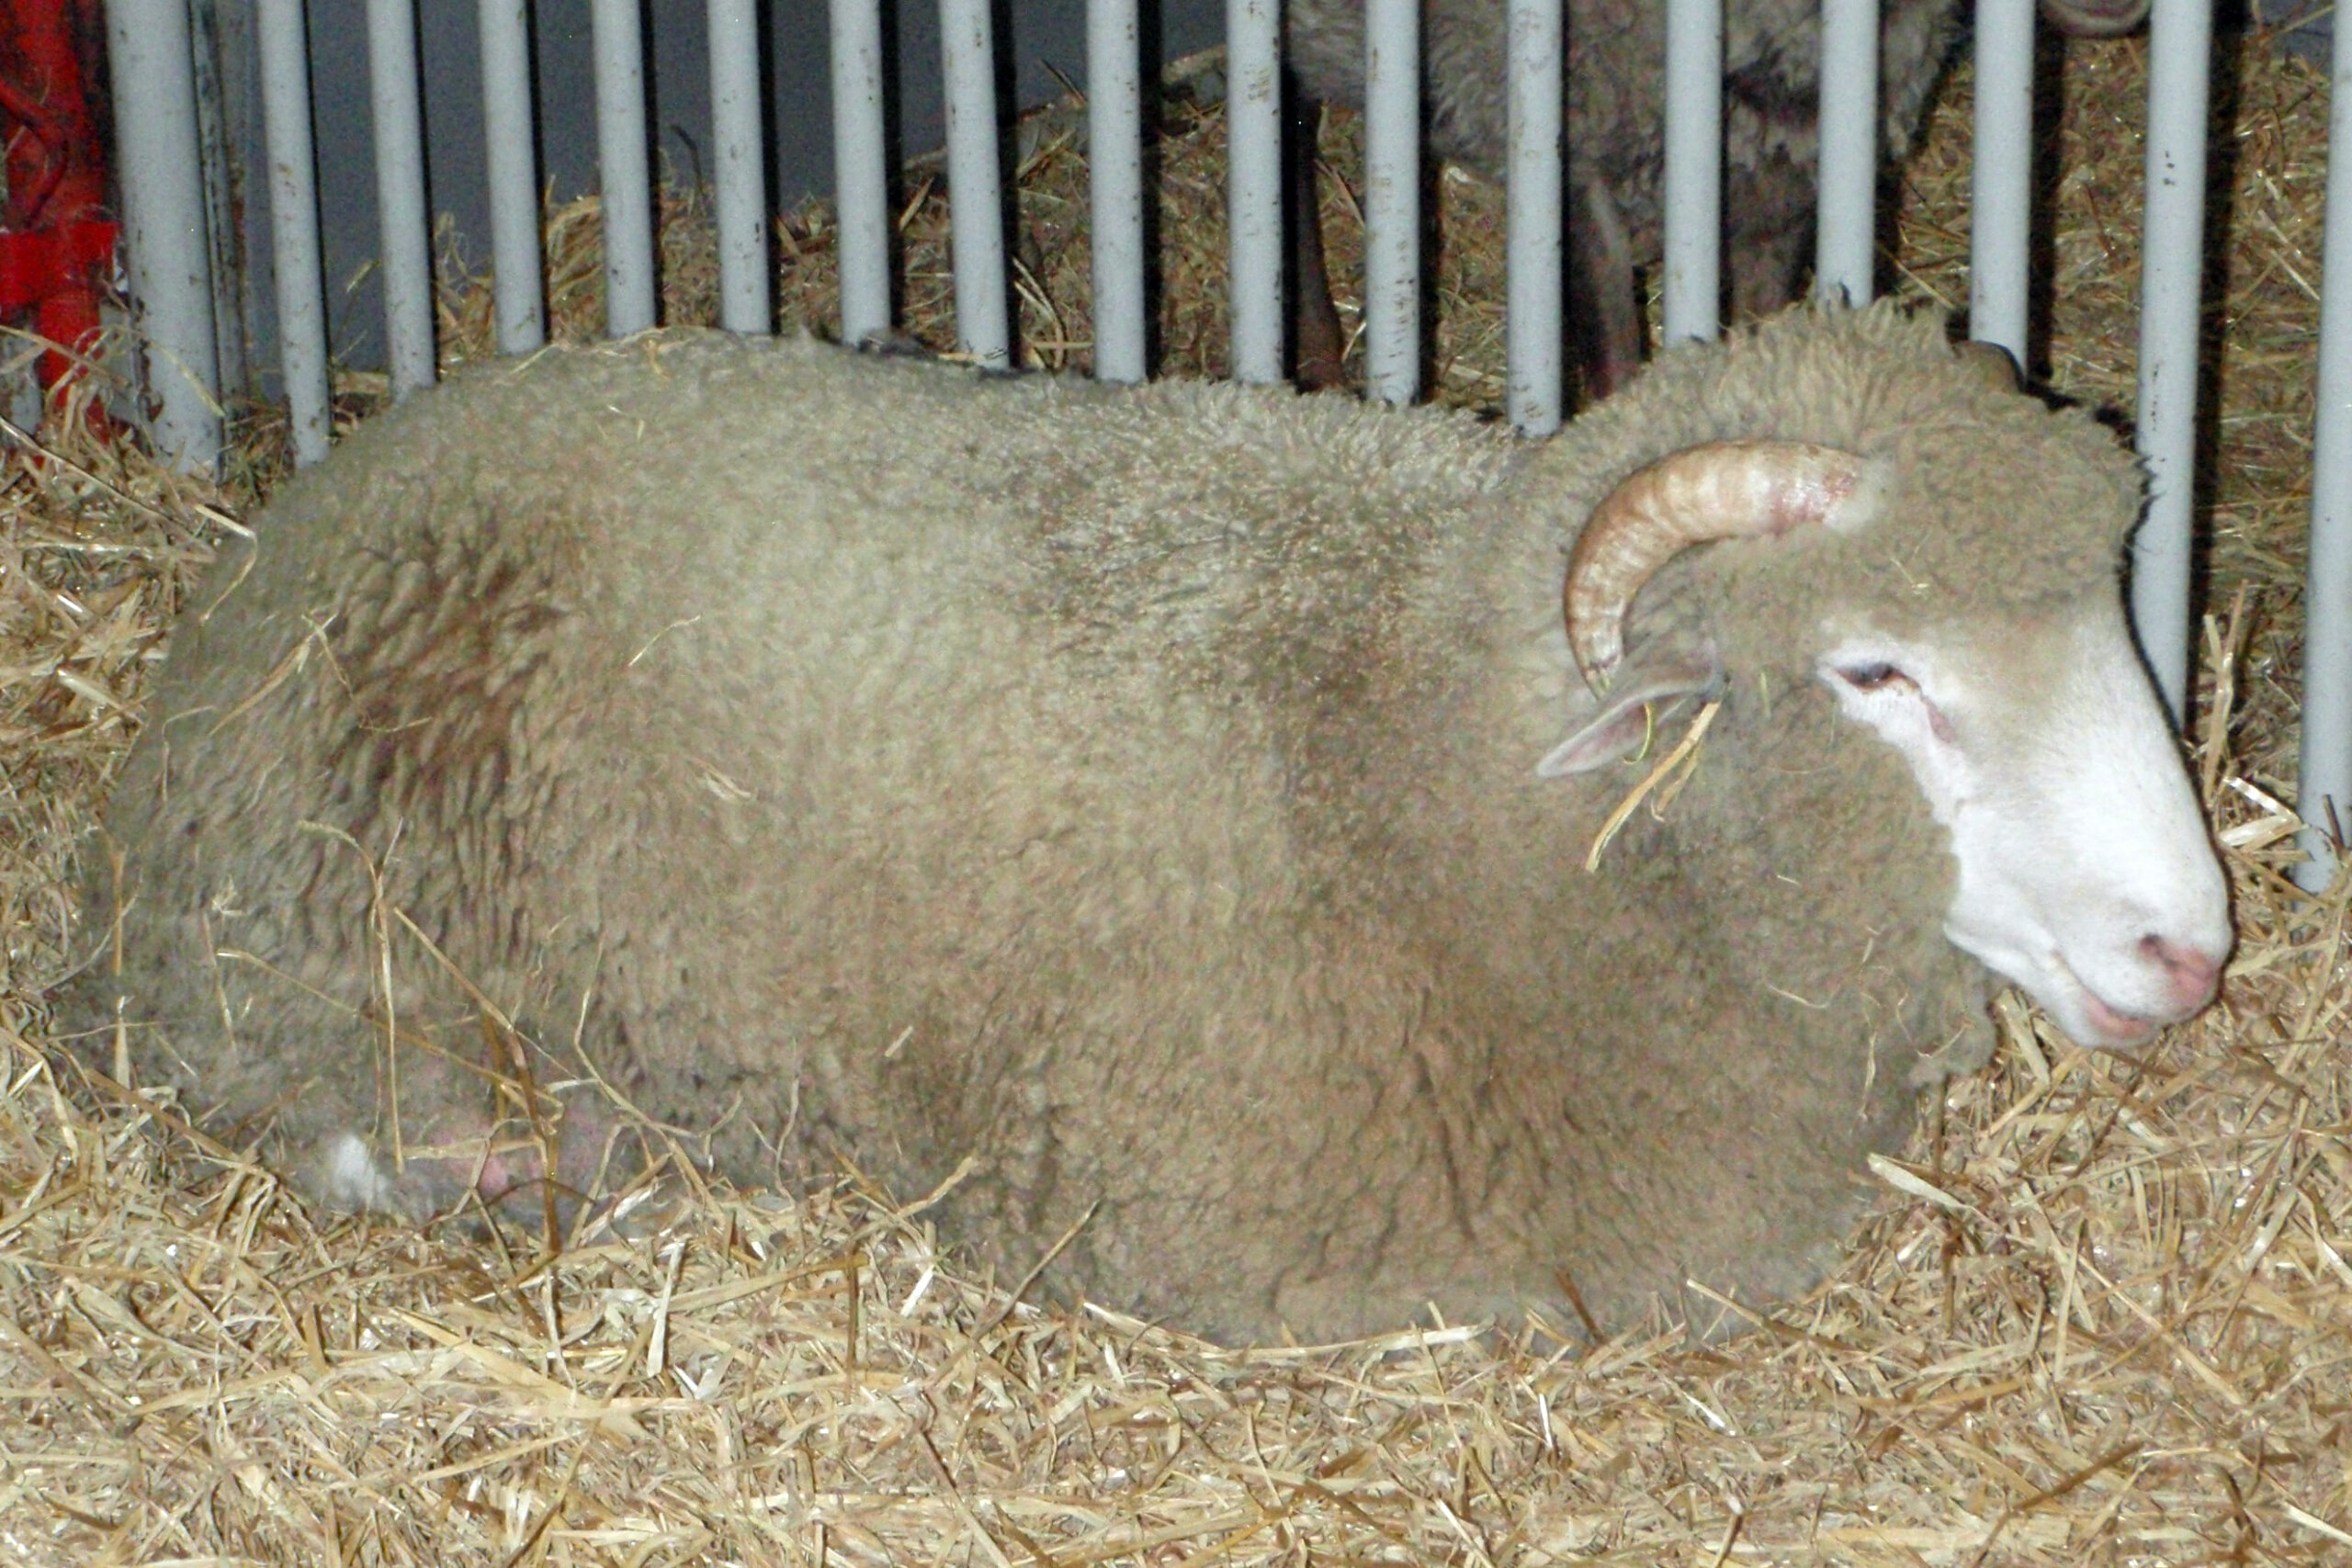 Berkas:dorset Sheep   Wikipedia Bahasa Indonesia pertaining to Gambar Domba Dorset